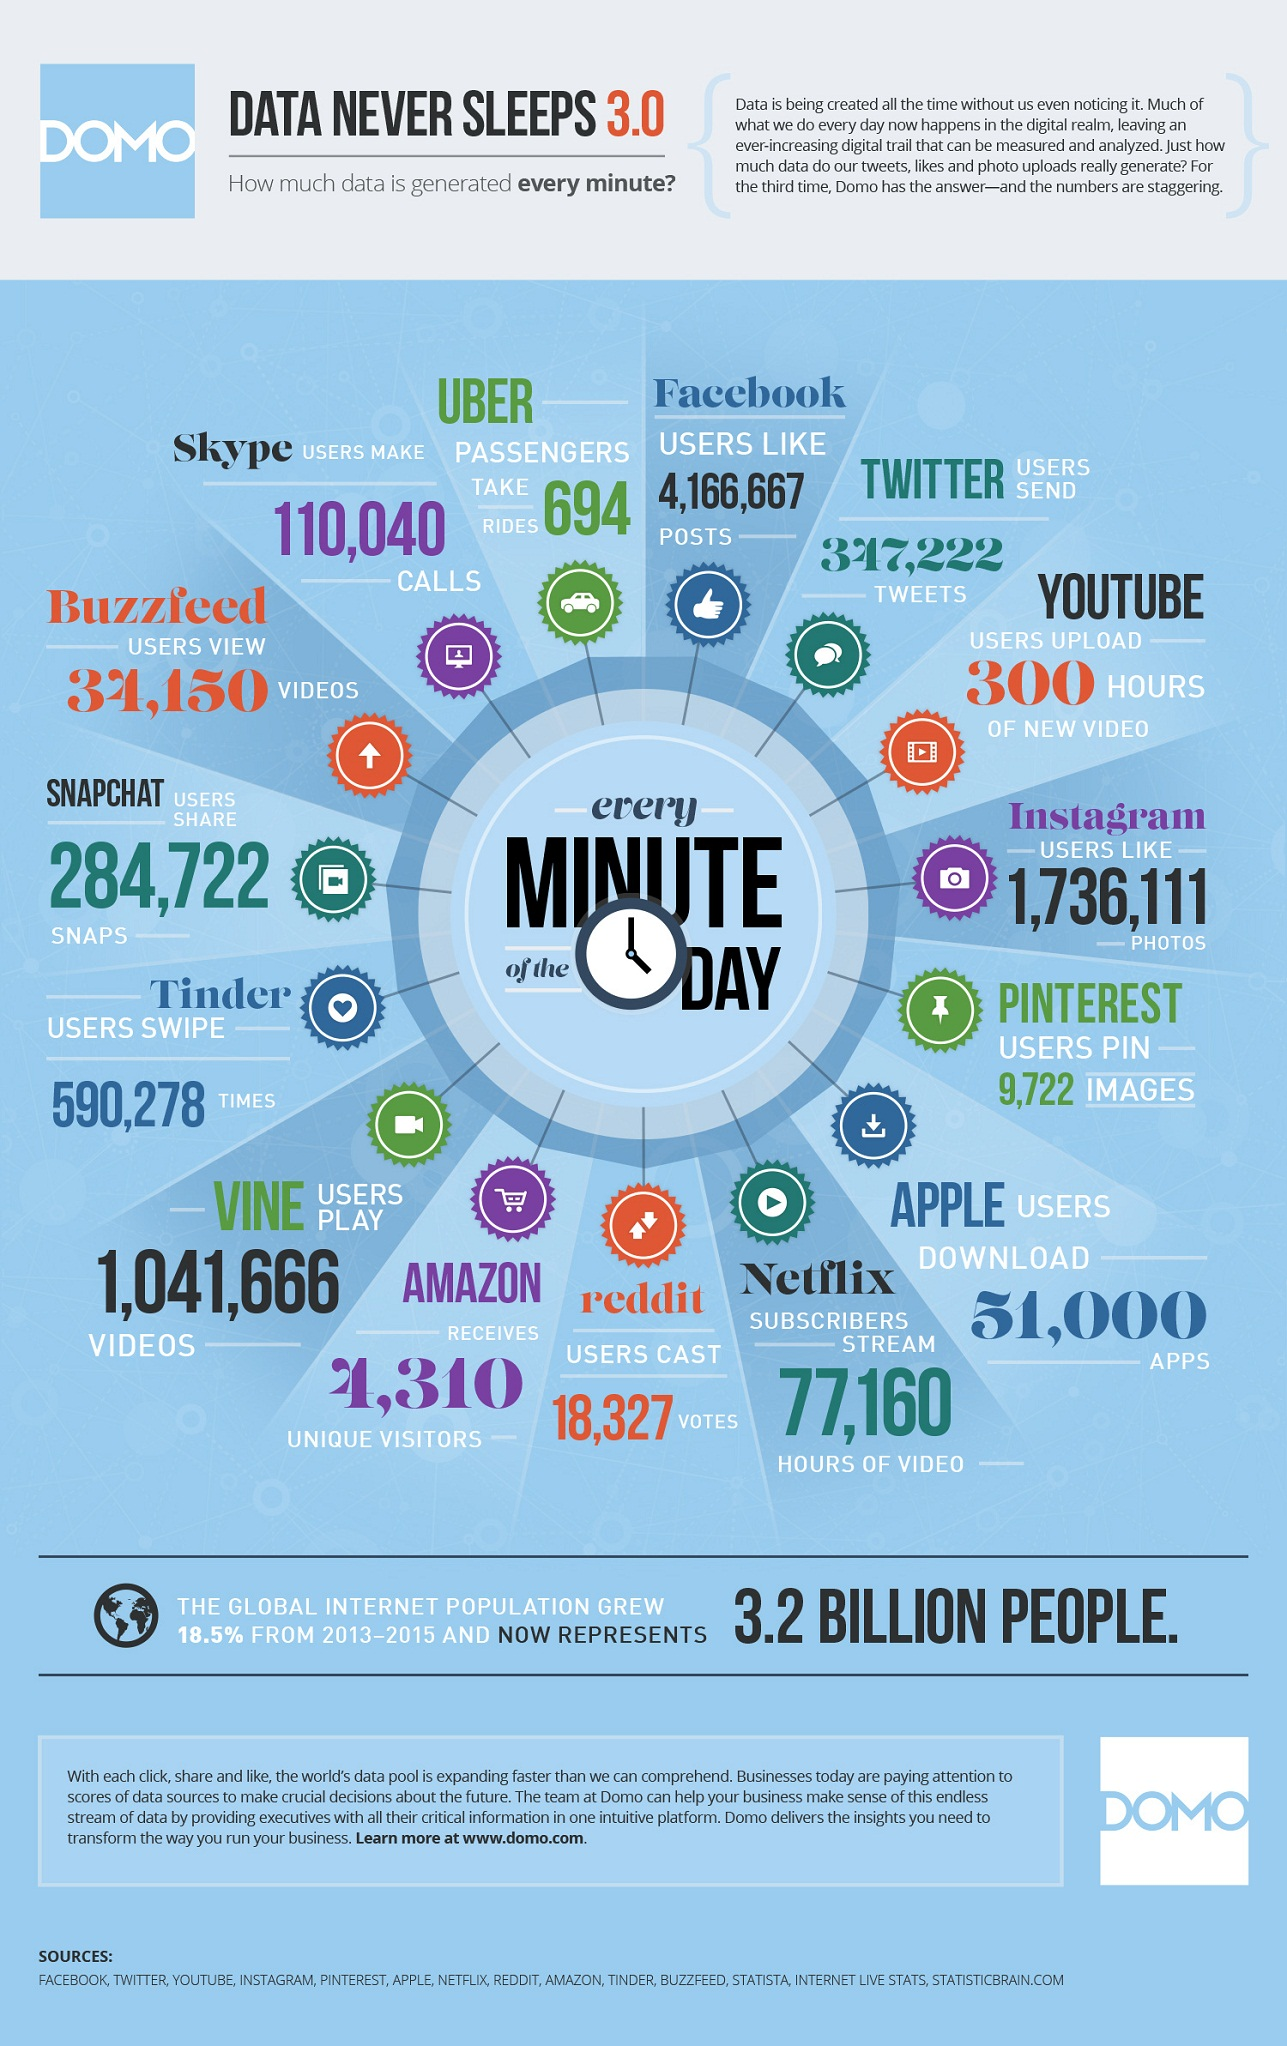 What Happens in Just One Minute on Facebook, Twitter, YouTube, Pinterest, Instagram, Reddit, Amazon, Vine, Tinder, Snapchat, Buzzfeed, Skype, Apple and Uber